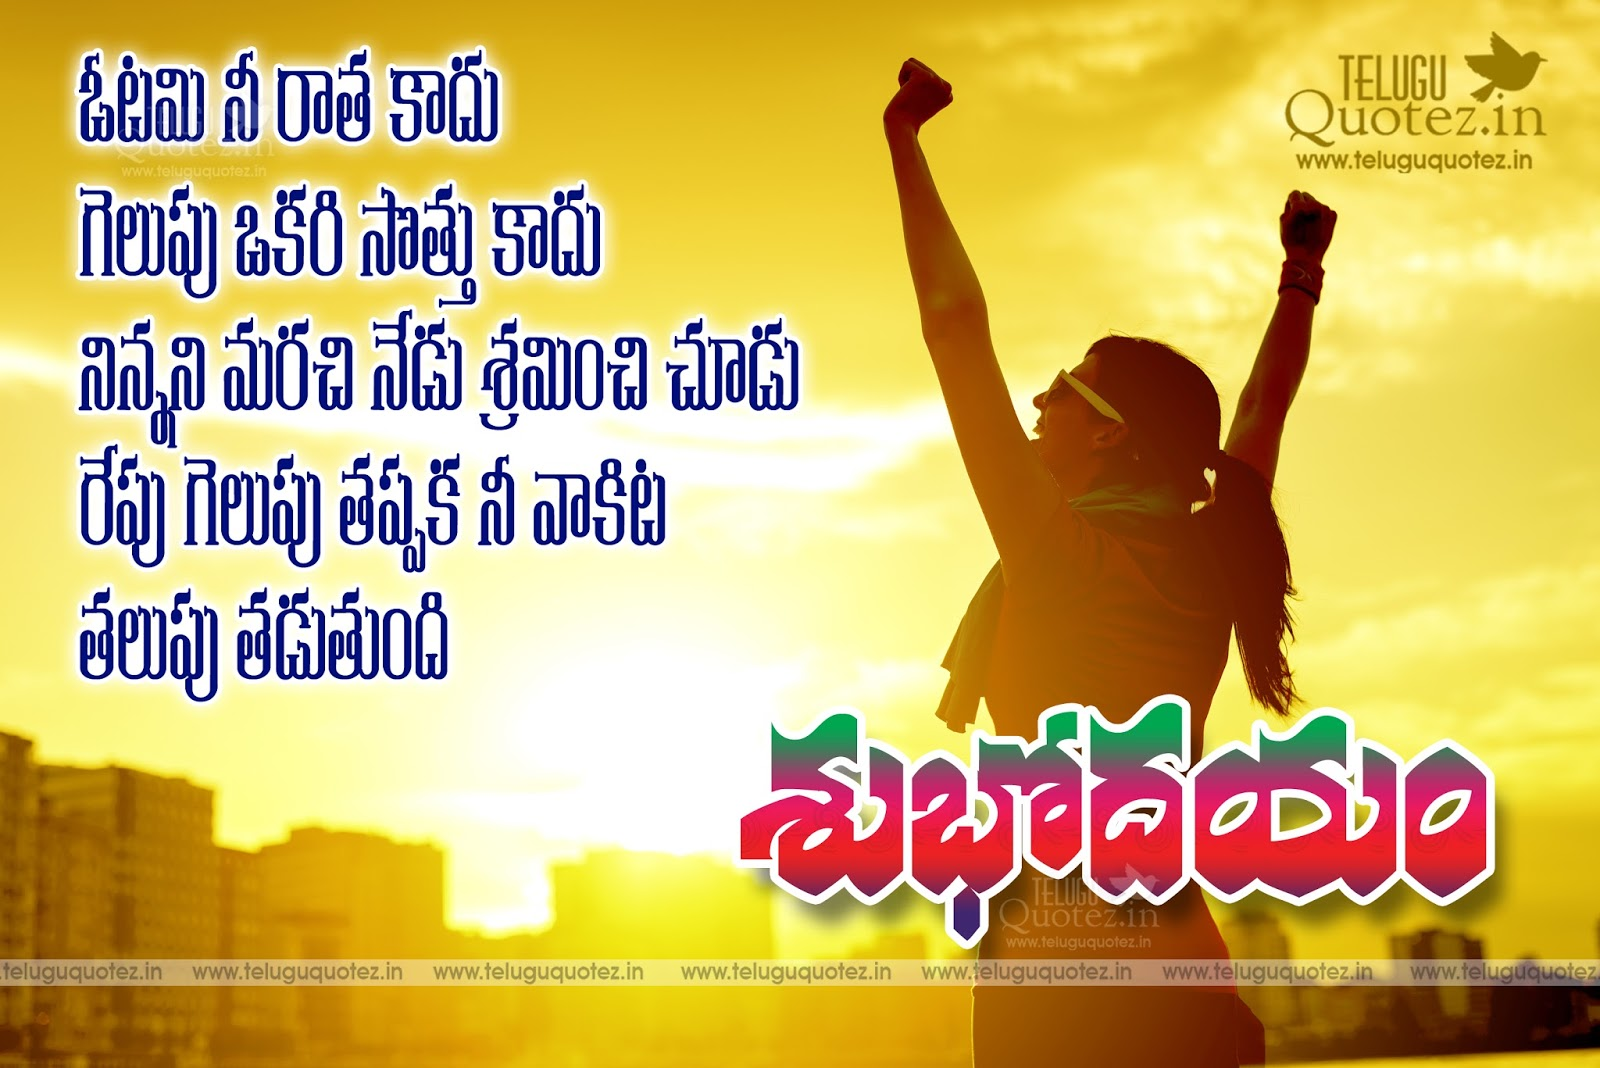 Best Positive Good Morning Telugu Quotes About Life Teluguquotez